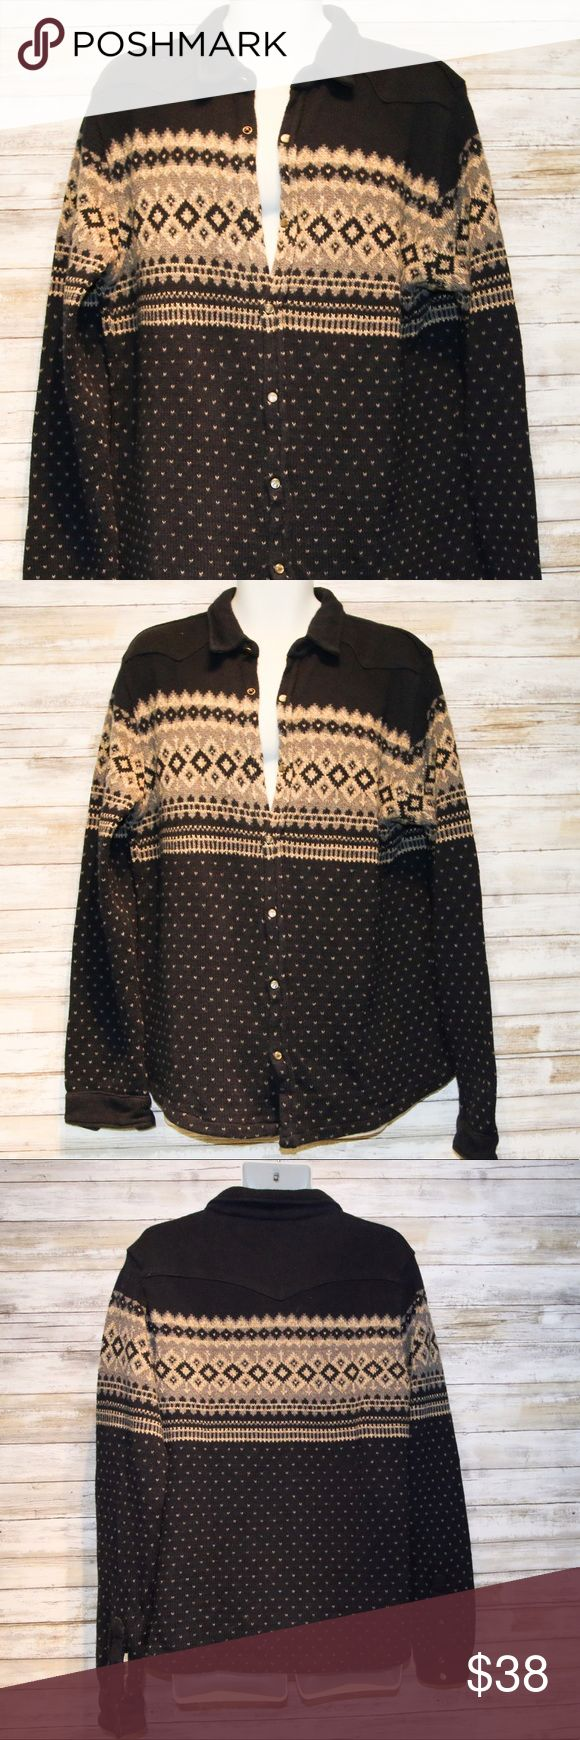 Scotch & Soda navy men's wool sweater sz XL Scotch & Soda men's navy wool sweater  sz XL  LAST PIC SHOWS A SNAPIS MISSING PREVIOUSLY WORN Scotch & Soda Sweaters